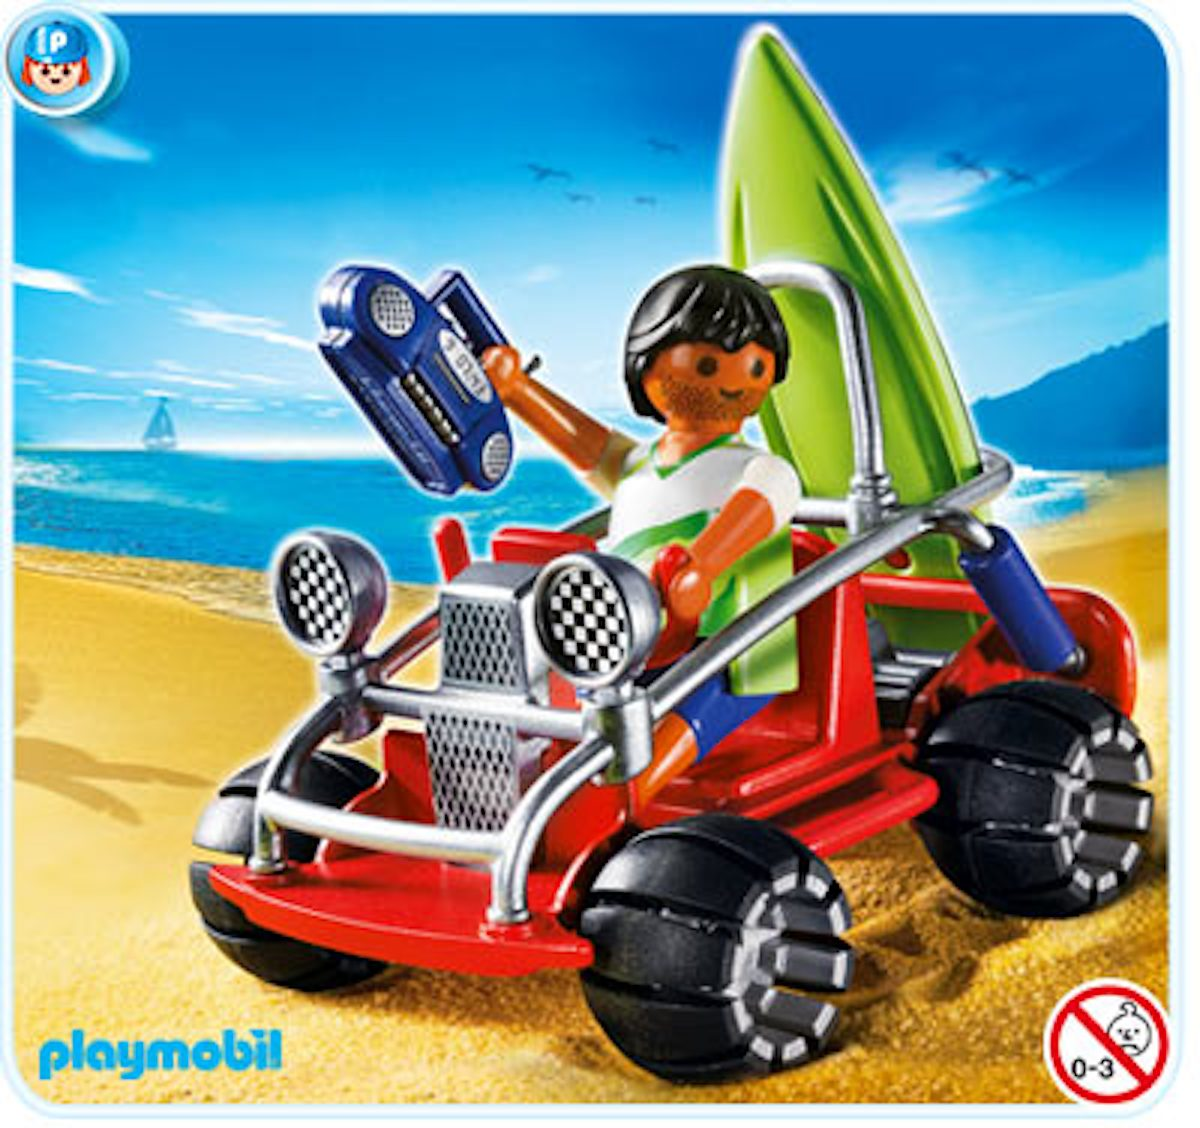 4863 Playmobil Strandbuggy